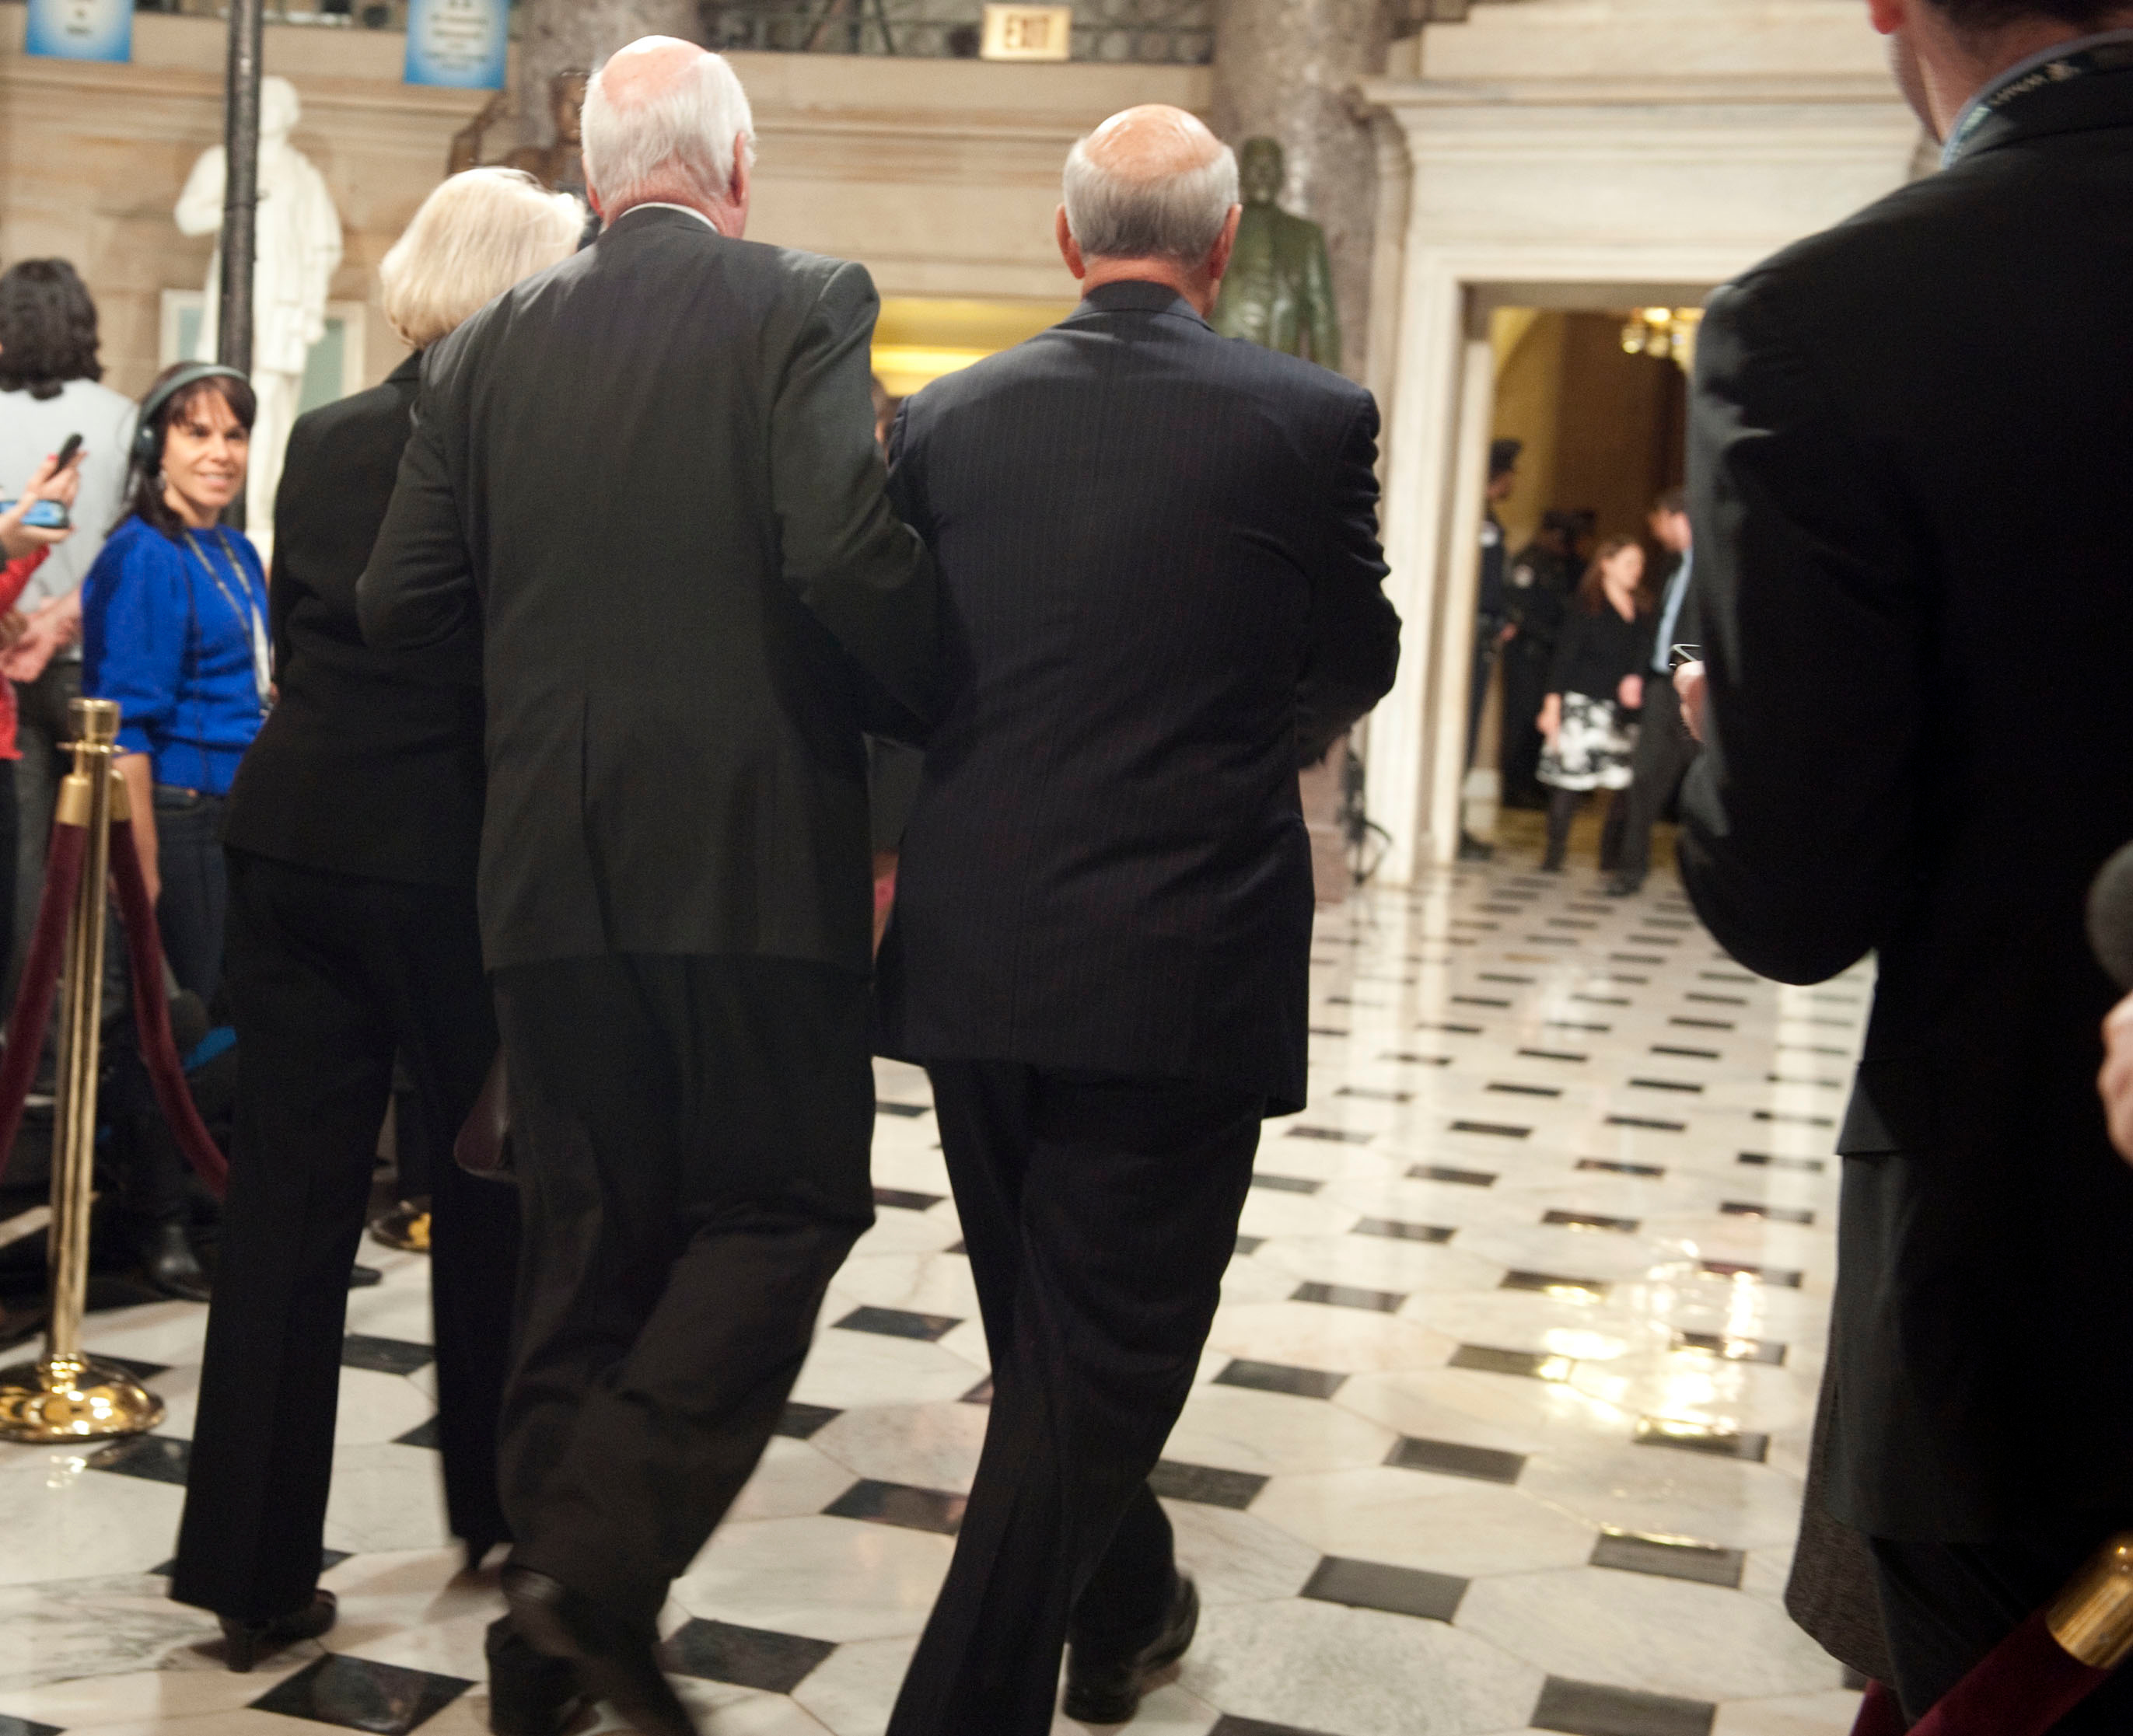 UNITED STATES - January 25, 2011 : Patrick Leahy, D-VT., (center) his wife Marcelle and Pat Roberts, R-KS., walk through Statuary Hall in the U.S. Capitol on their way to the House Chamber to hear President Barack Obama deliver his first State of the Union Address before a joint session of Congress on January 25, 2011. (Photo By Douglas Graham / CQ/Roll Call)